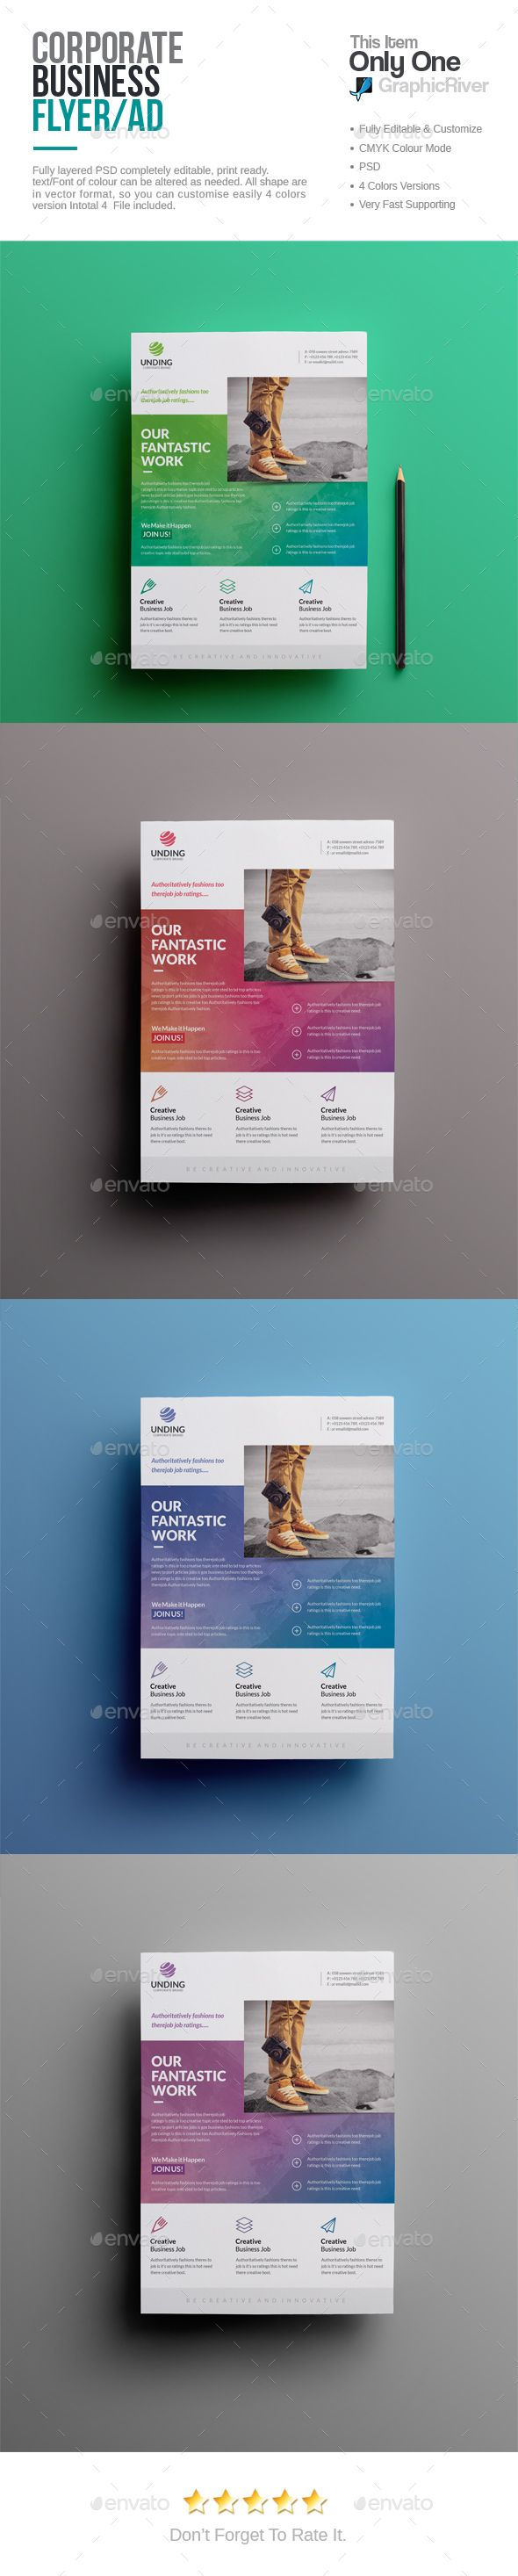 Corporate Flyer  — PSD Template #studio #professional • Download ➝ https://graphicriver.net/item/corporate-flyer/18506630?ref=pxcr